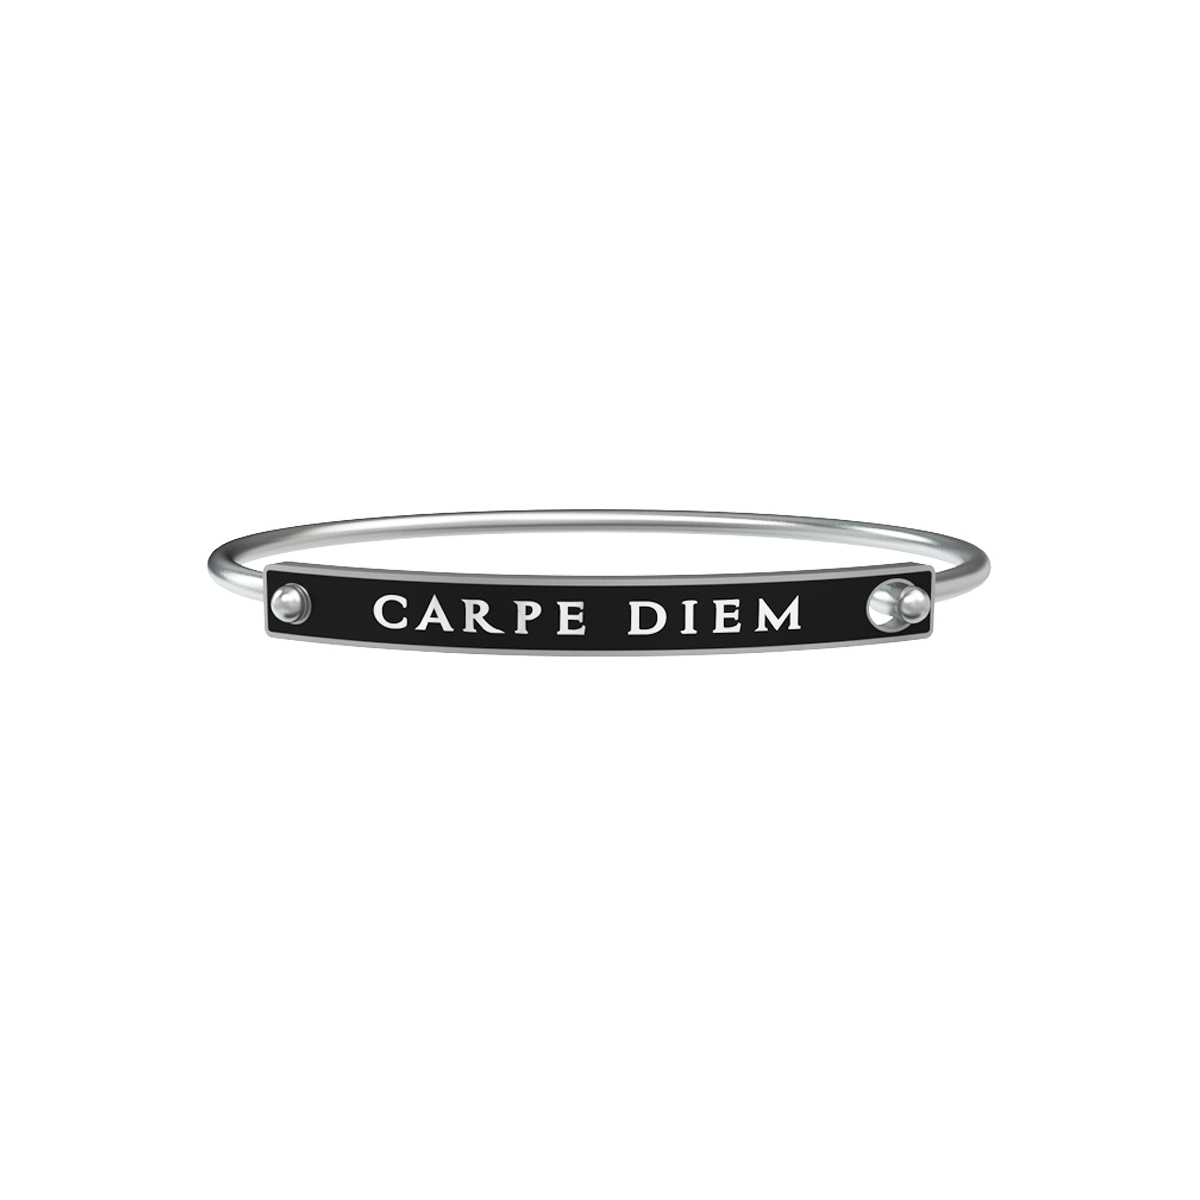 Kidult life uomo collection ref 731174 Carpe Diem